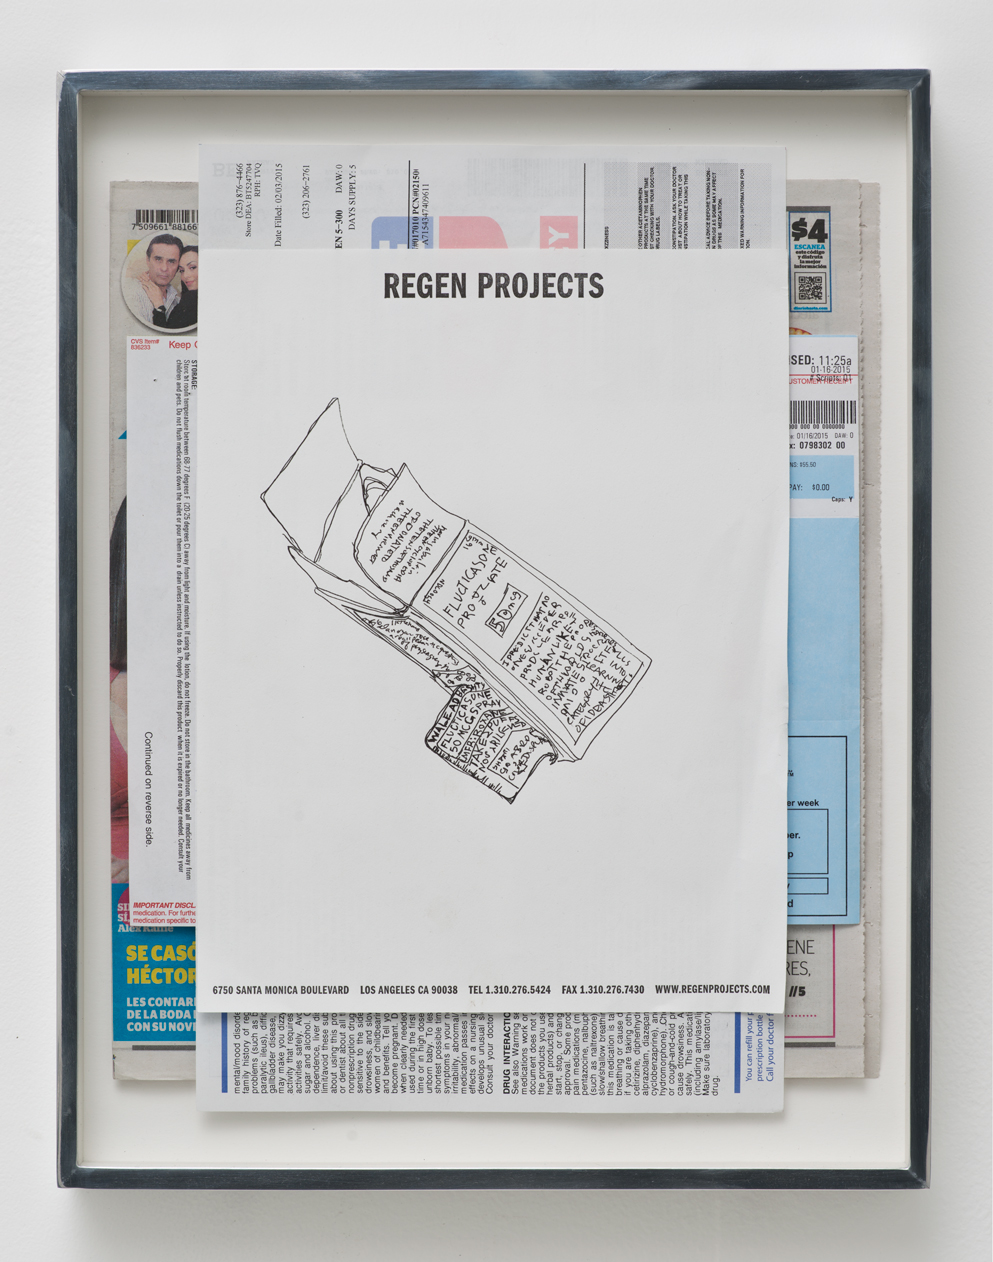 Fluticasone Propionate, 50 mcg, Spray, Boehringer Ingelheim, Roxane Laboratories, Inc.: Regen Projects, Los Angeles, California, Febraury 7, 2015    2015   Ink on letterhead, newspaper, ink on paper  15 x 11 1/2 inches   Walid AlBeshti, 2015